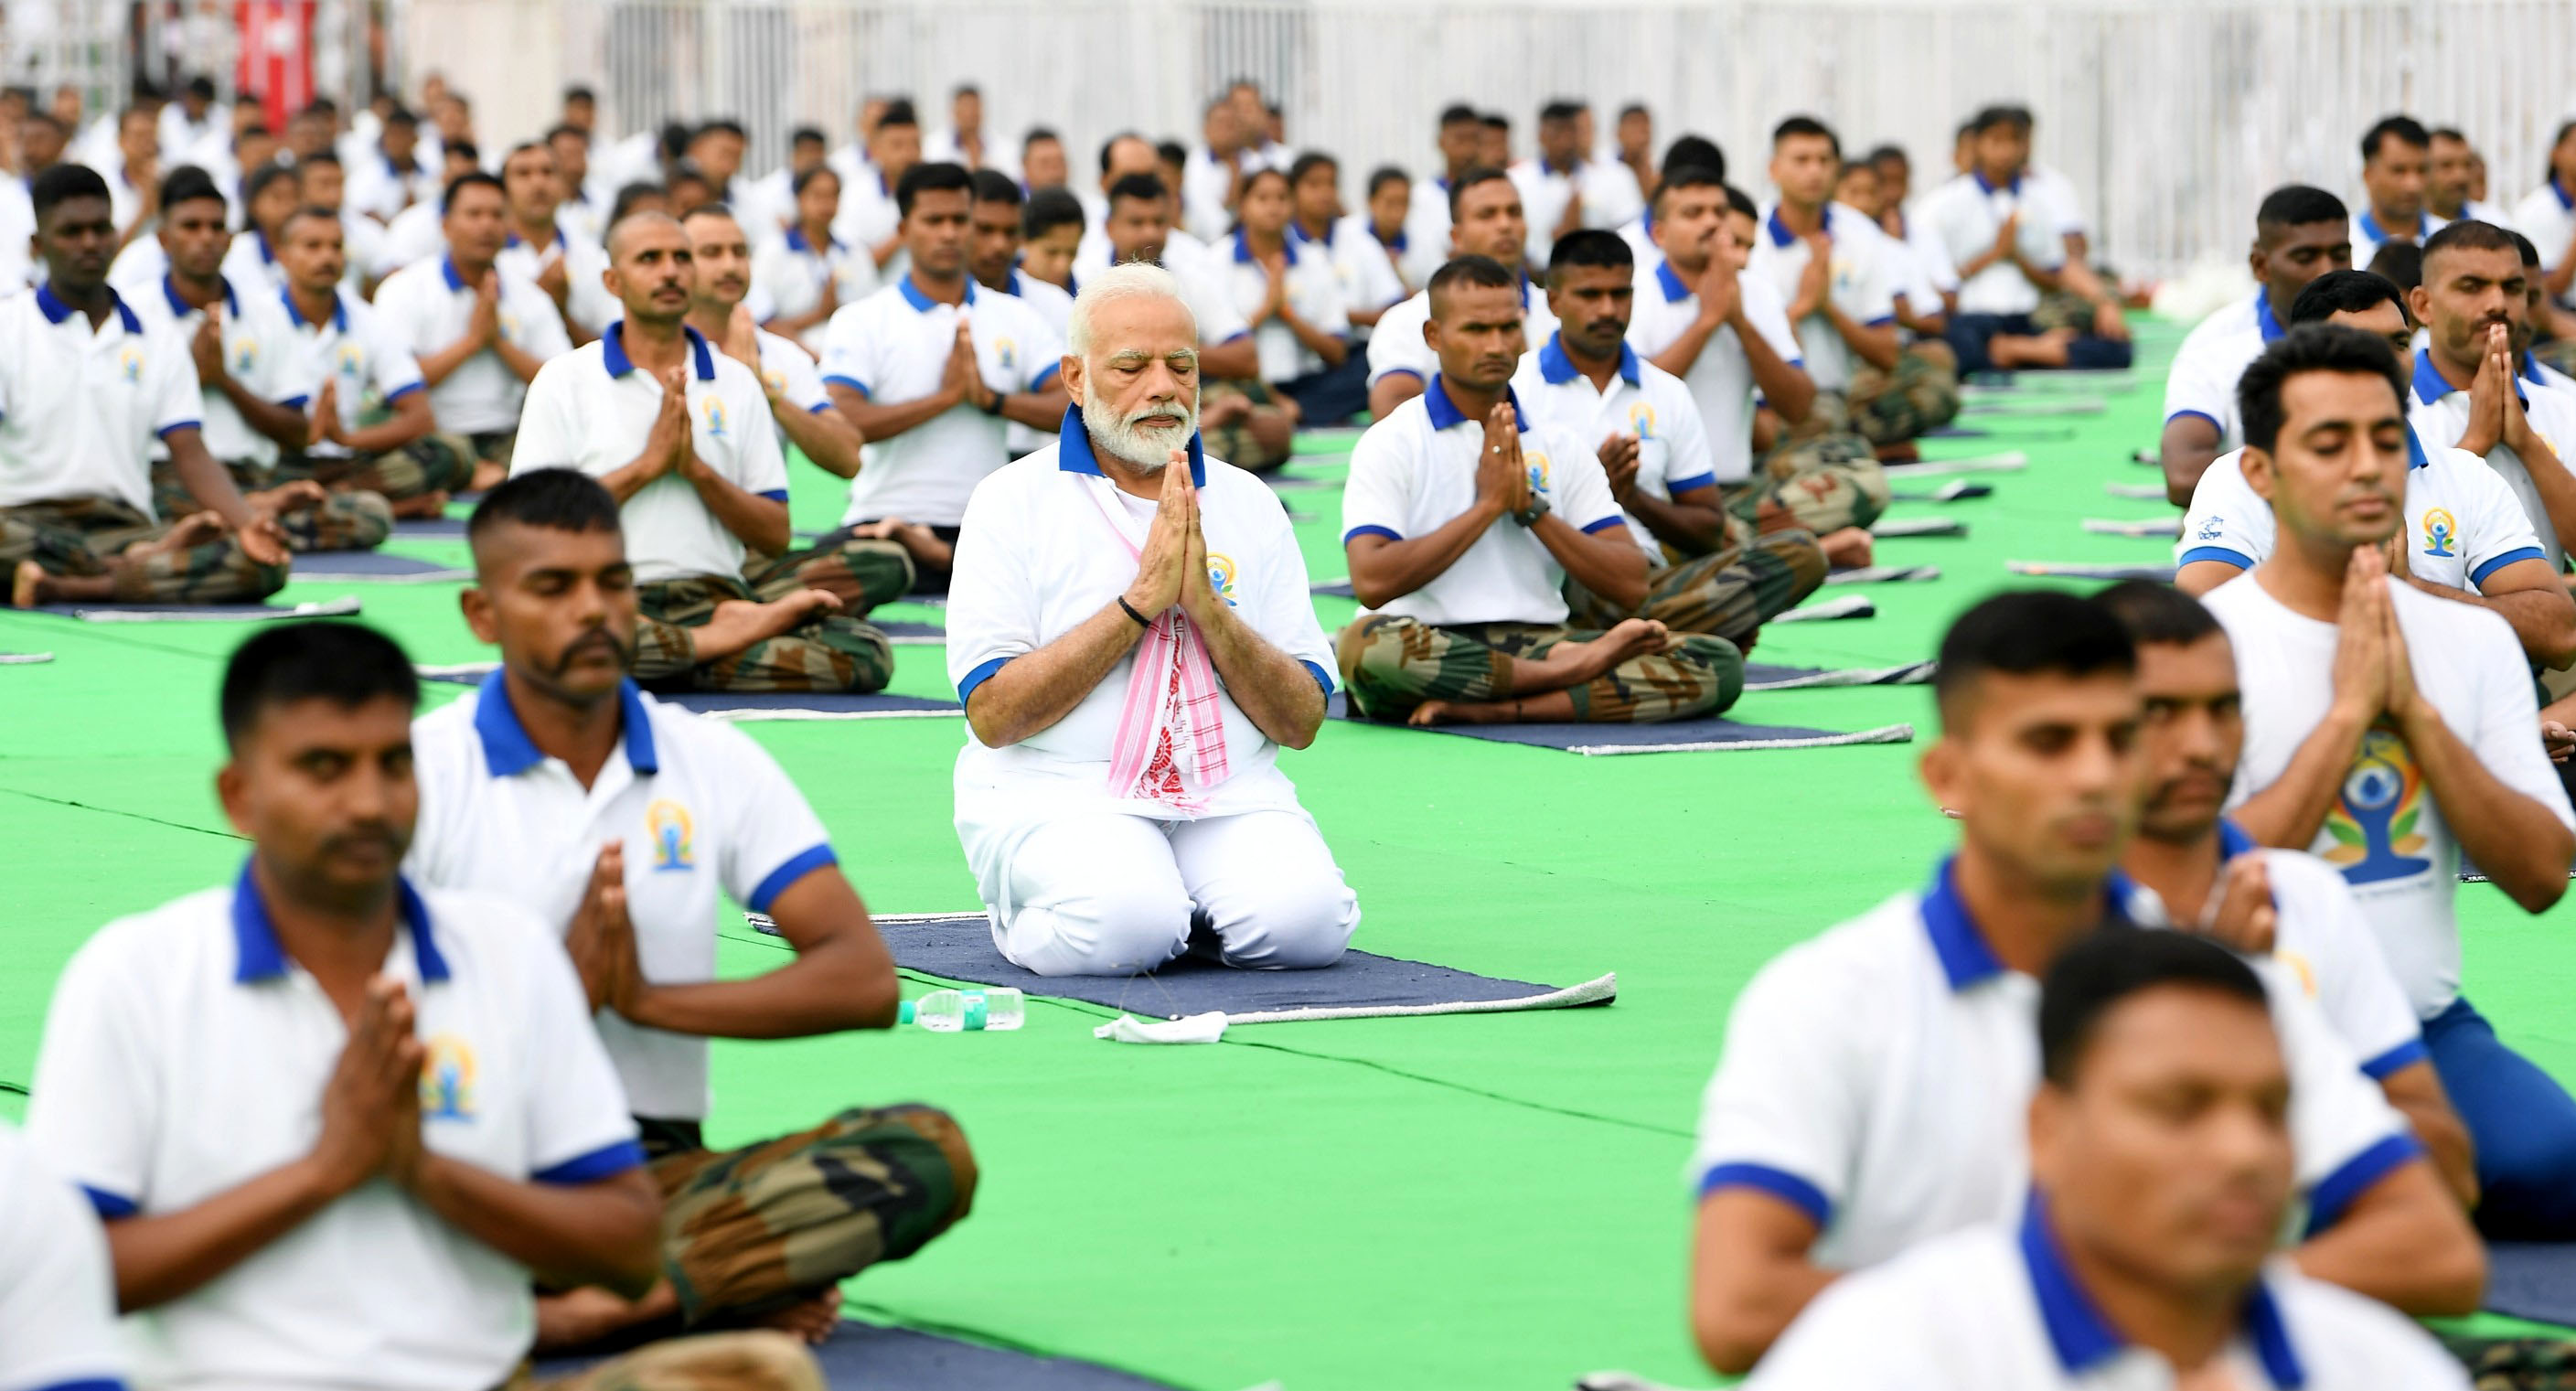 On the occasion of International Day of Yoga, PM leads Mass Yoga Demonstration at Ranchi